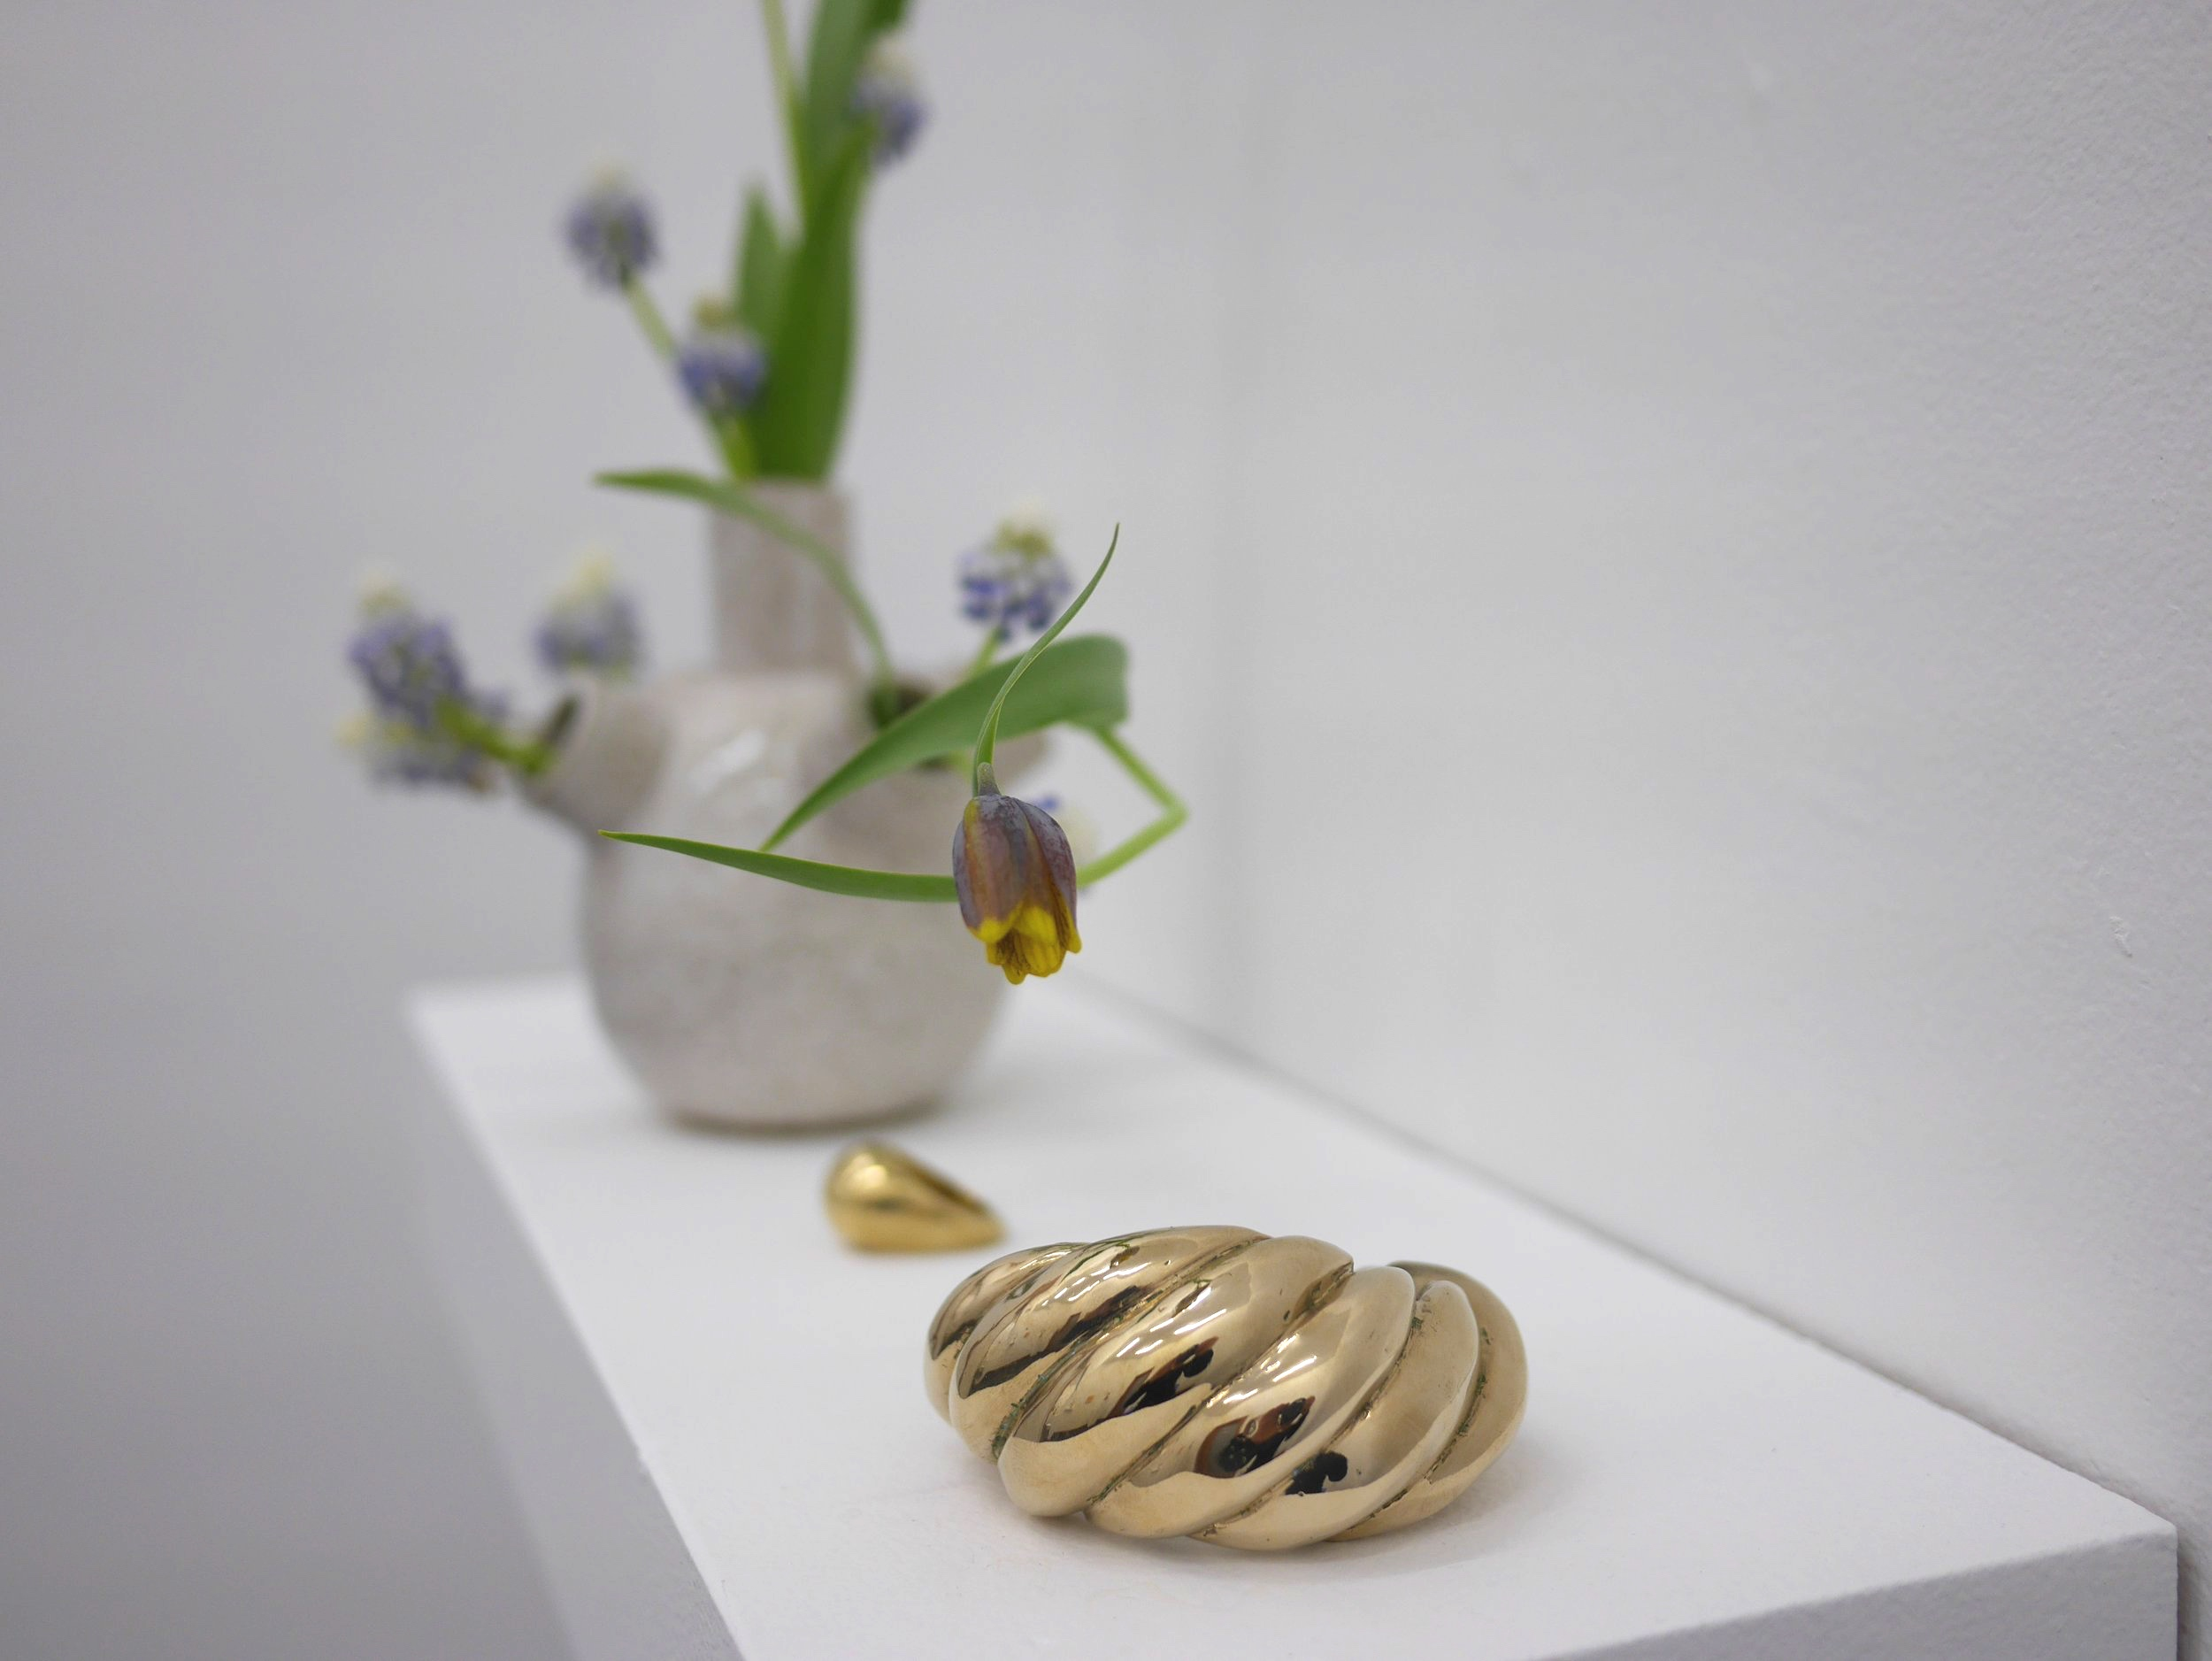 Flowers by Hilary Horvath  Vessel by Erica Prince  Jewelry by Laurel Hill